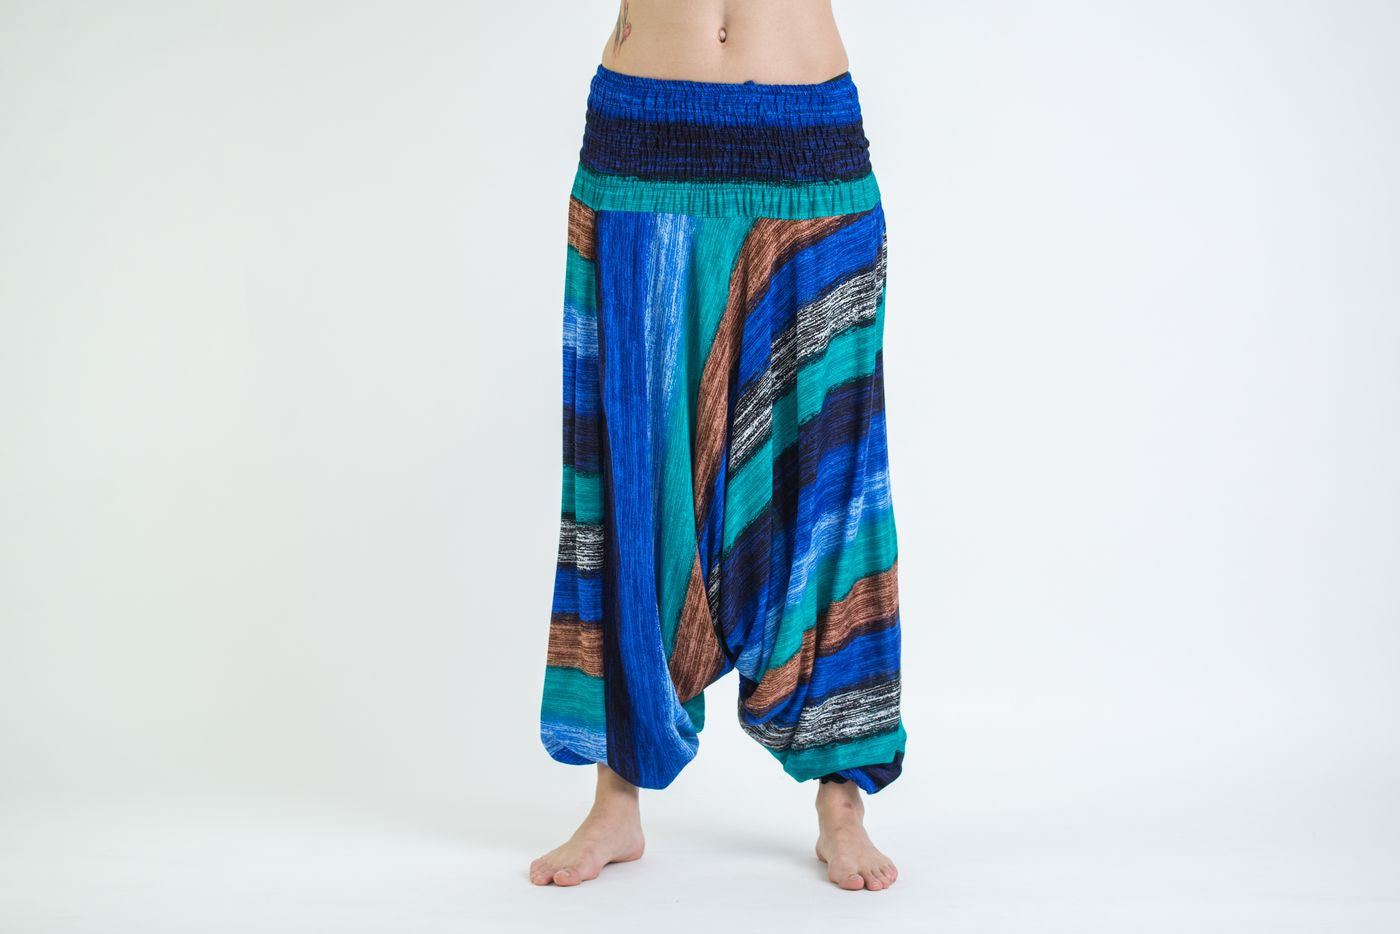 Hippie harem pants in distressed turquoise  teal with  beautiful embroidered butterflies